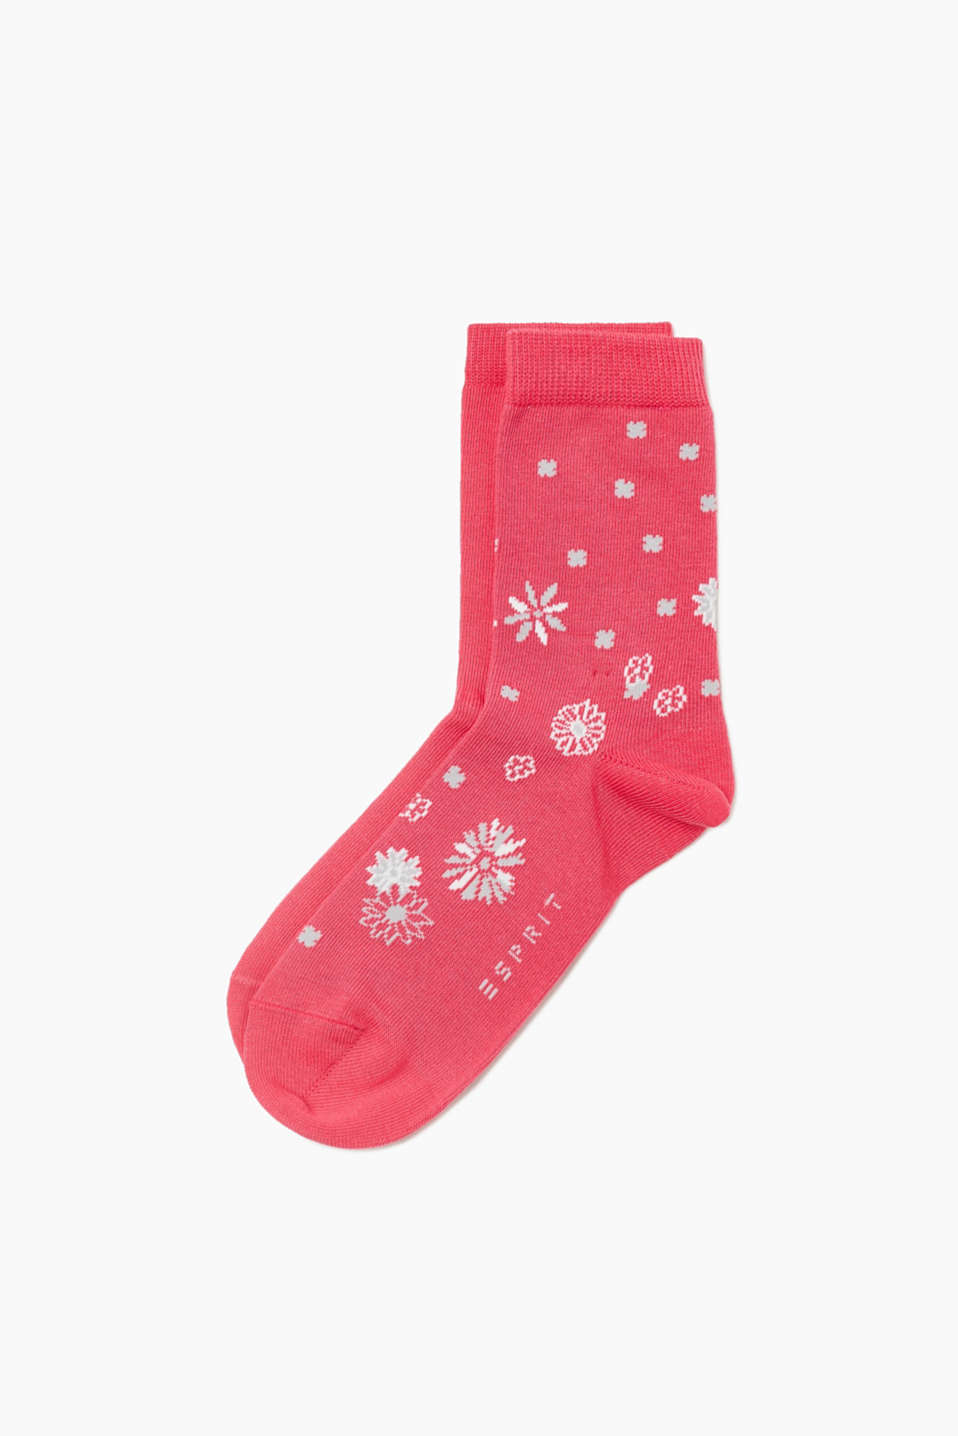 Esprit - Double pack of socks with a floral pattern